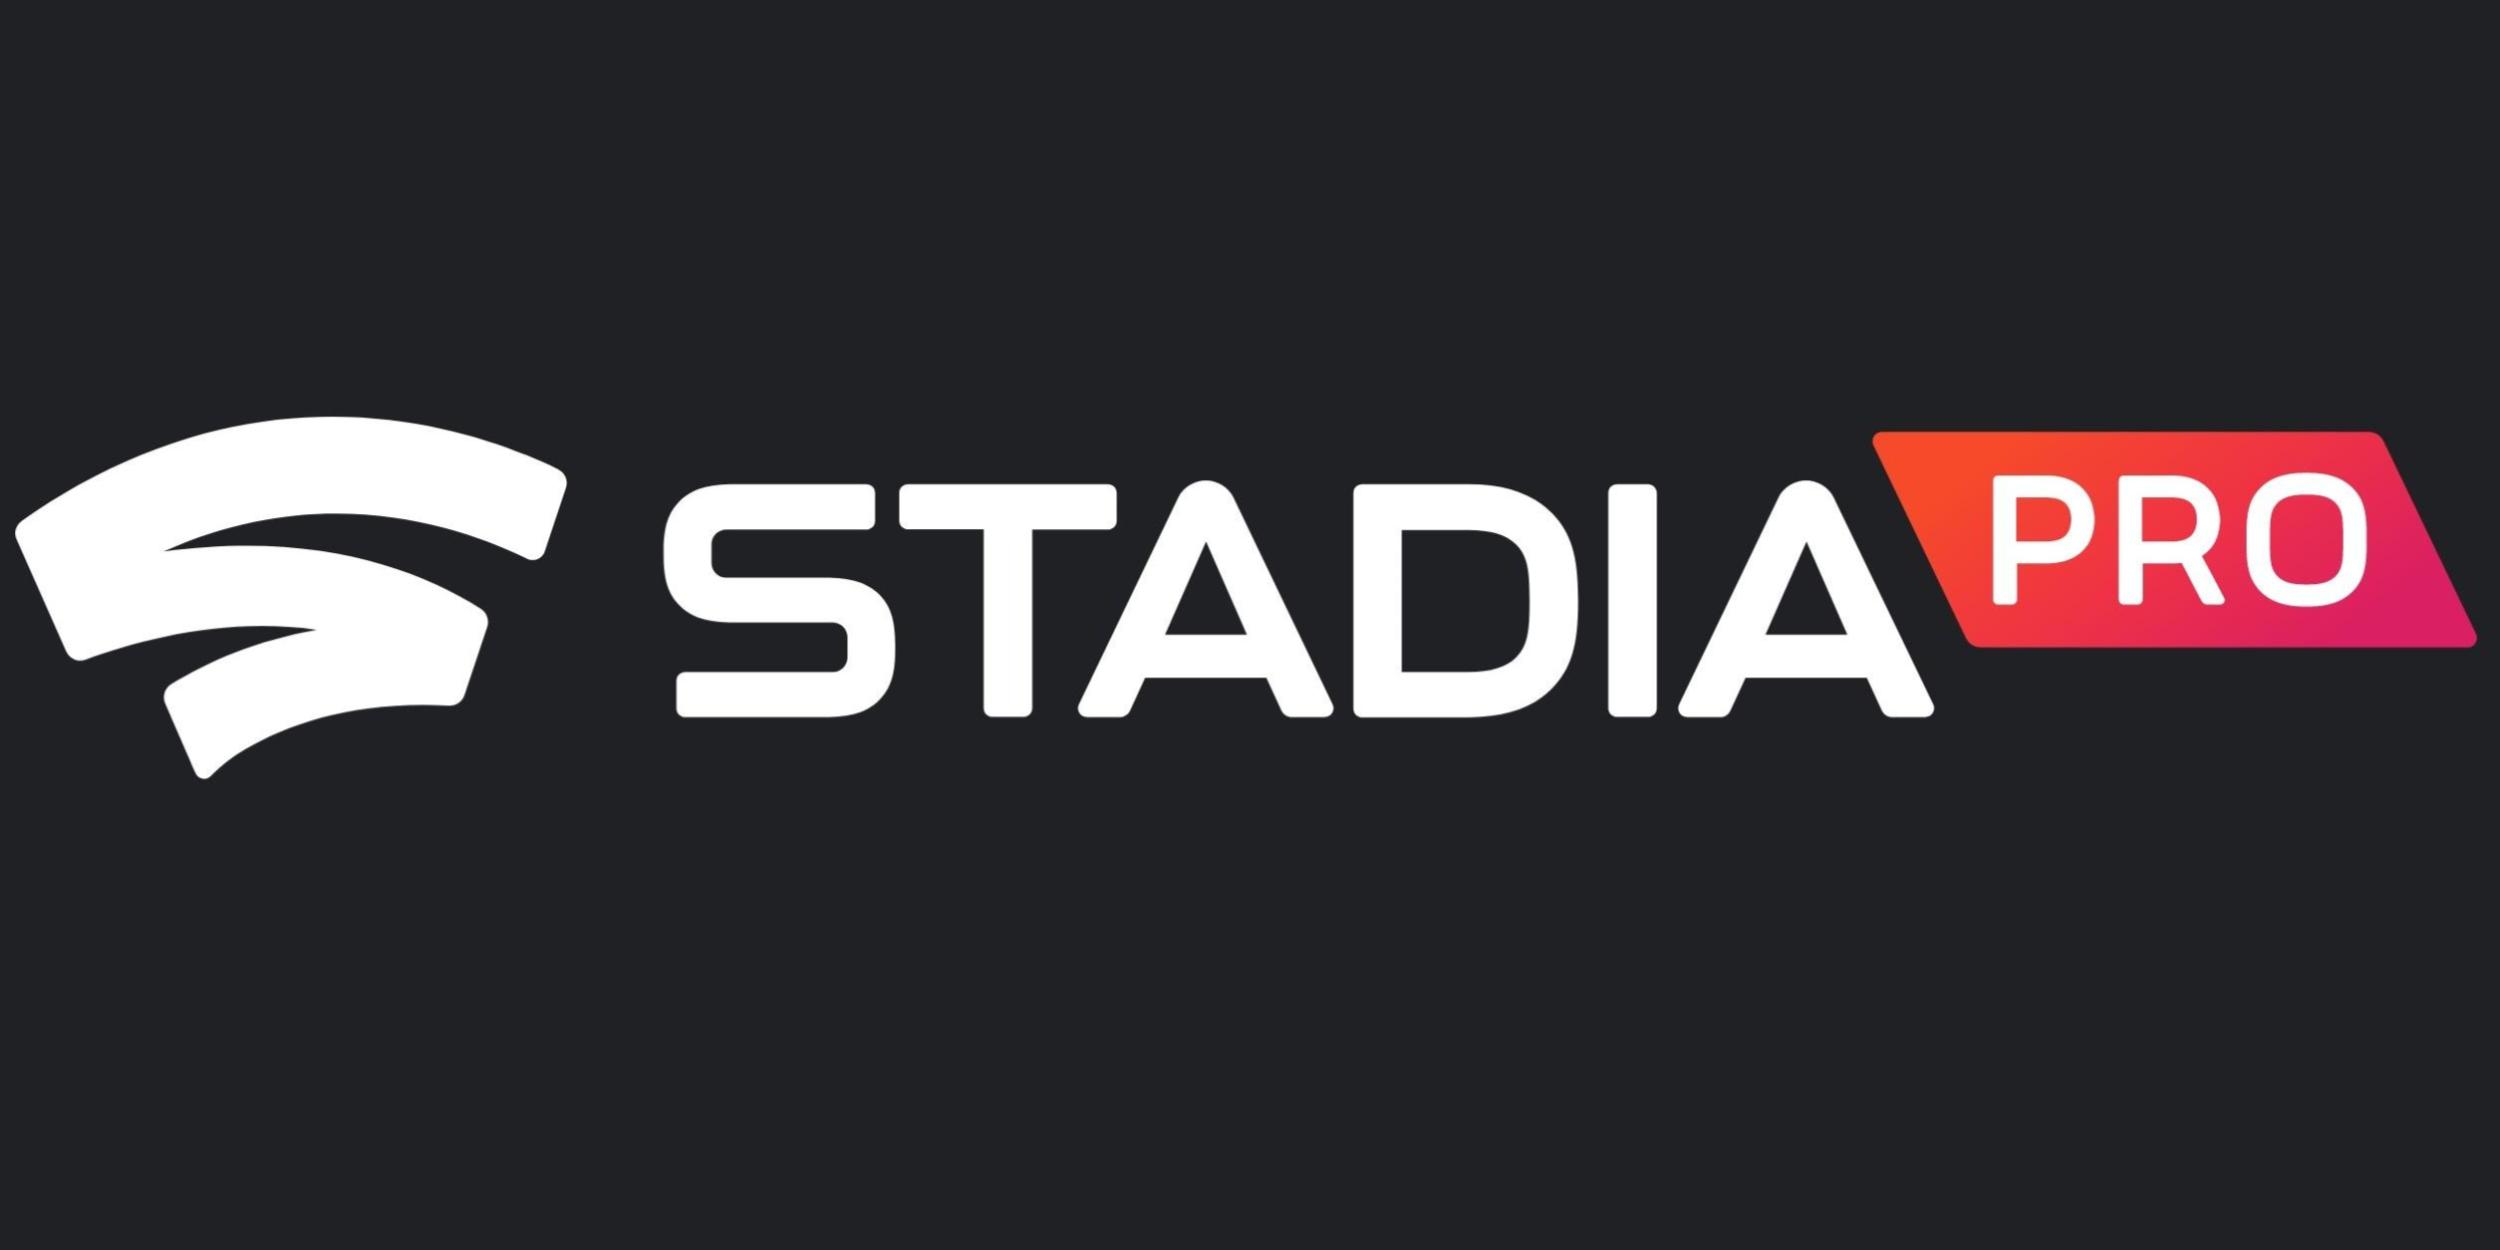 Google's two-month Stadia Pro trial ending next month - 9to5Google